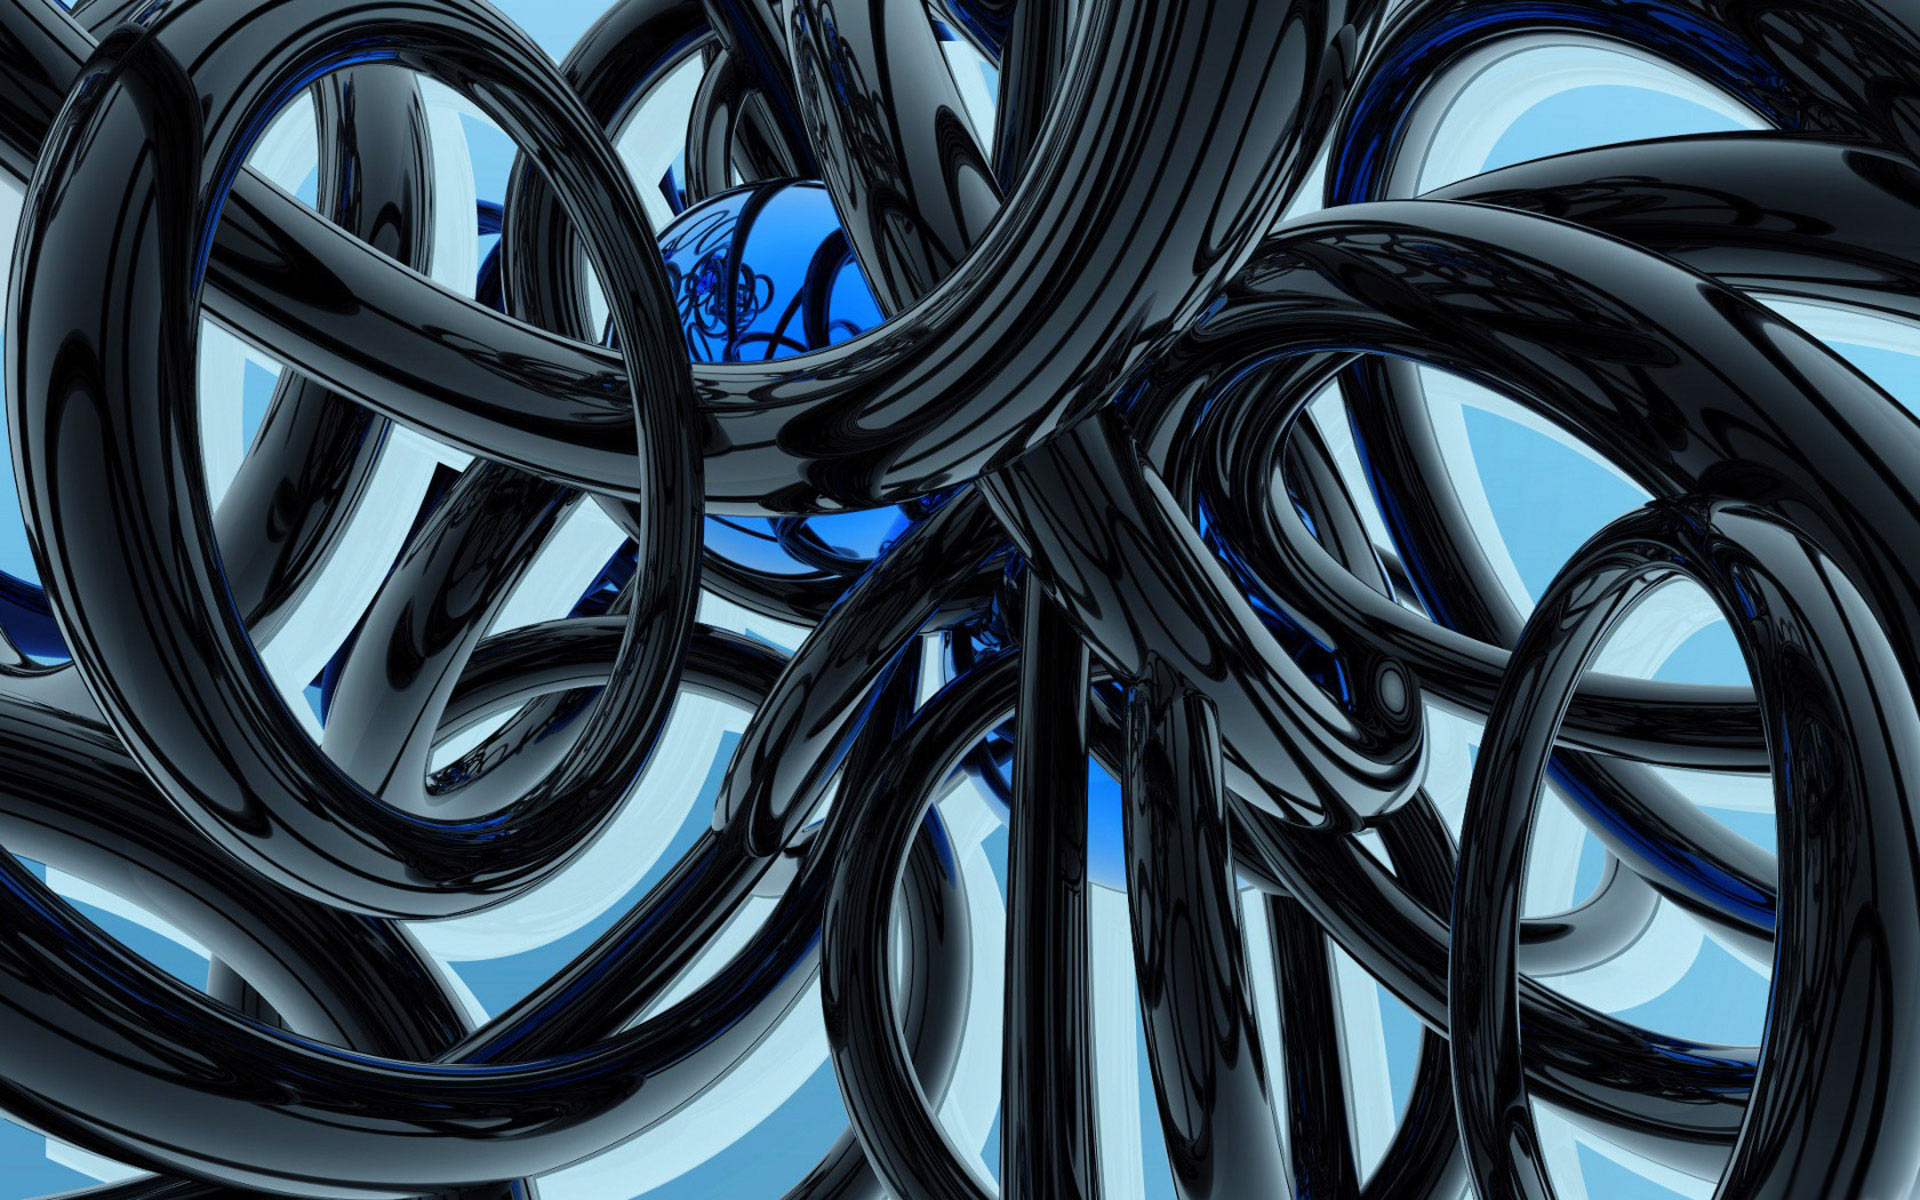 3d abstract hd Wallpaper and make this wallpaper for your desktop 1920x1200